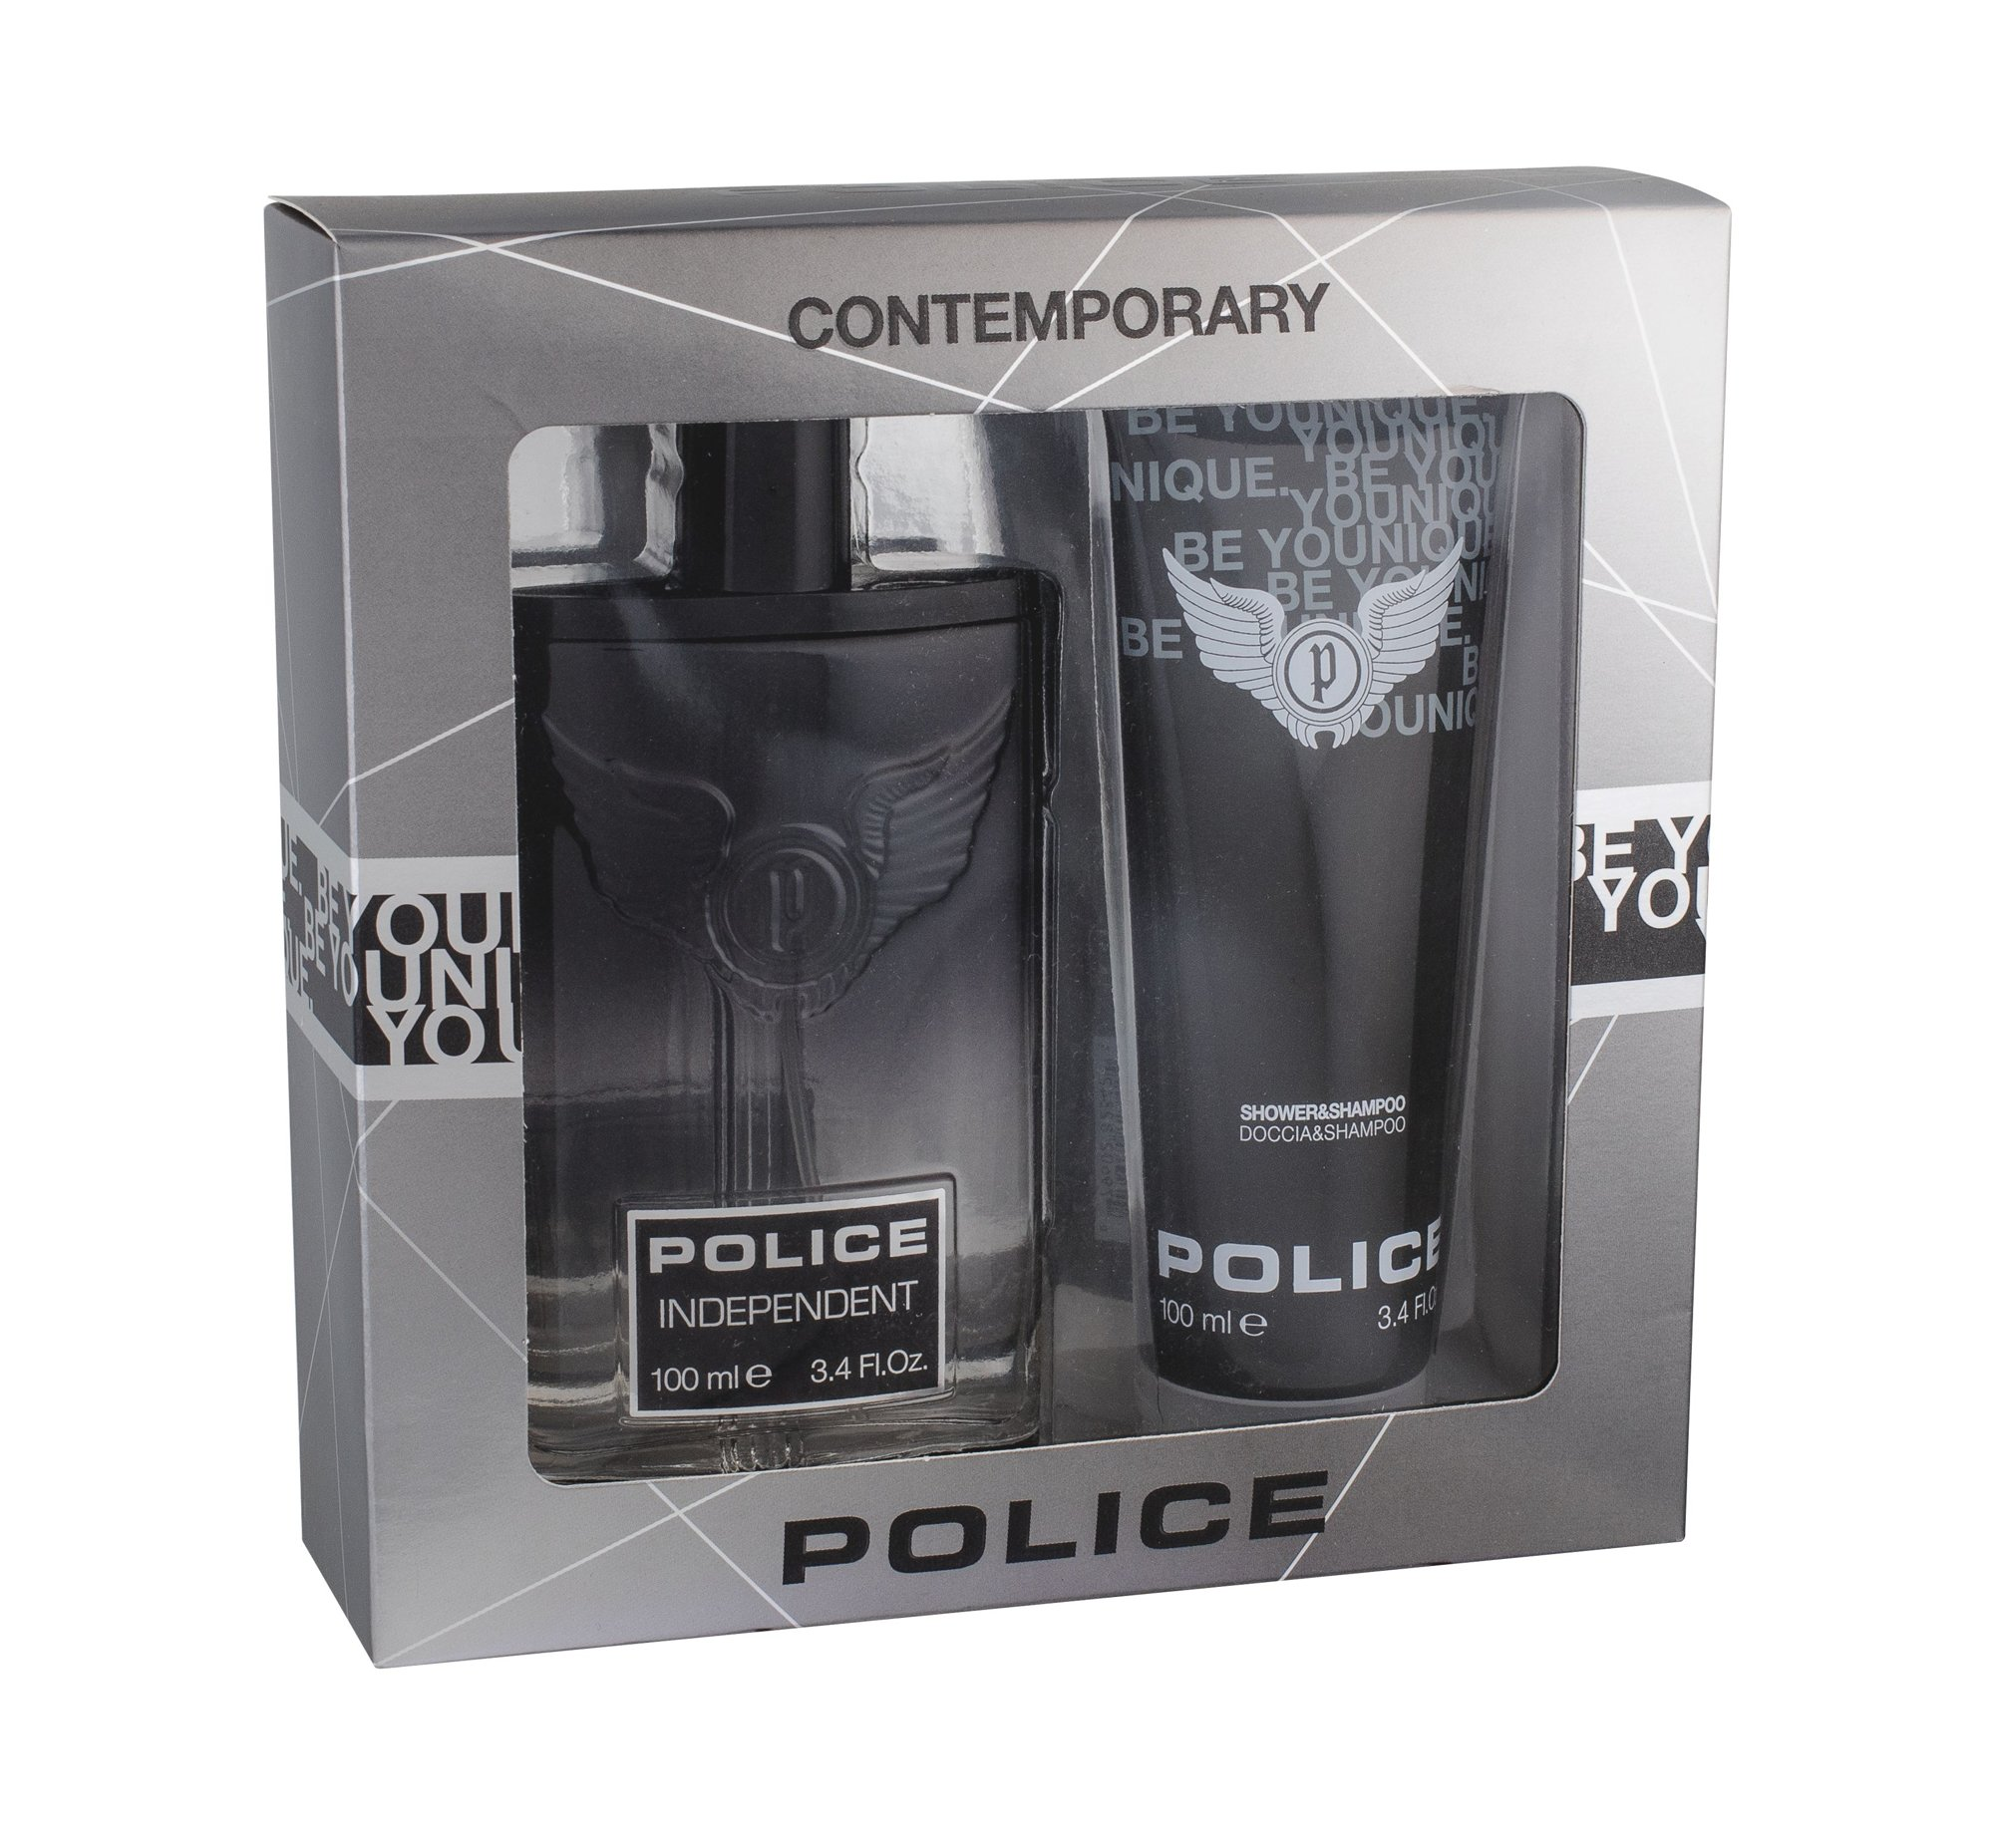 Police Independent Eau de Toilette 100ml